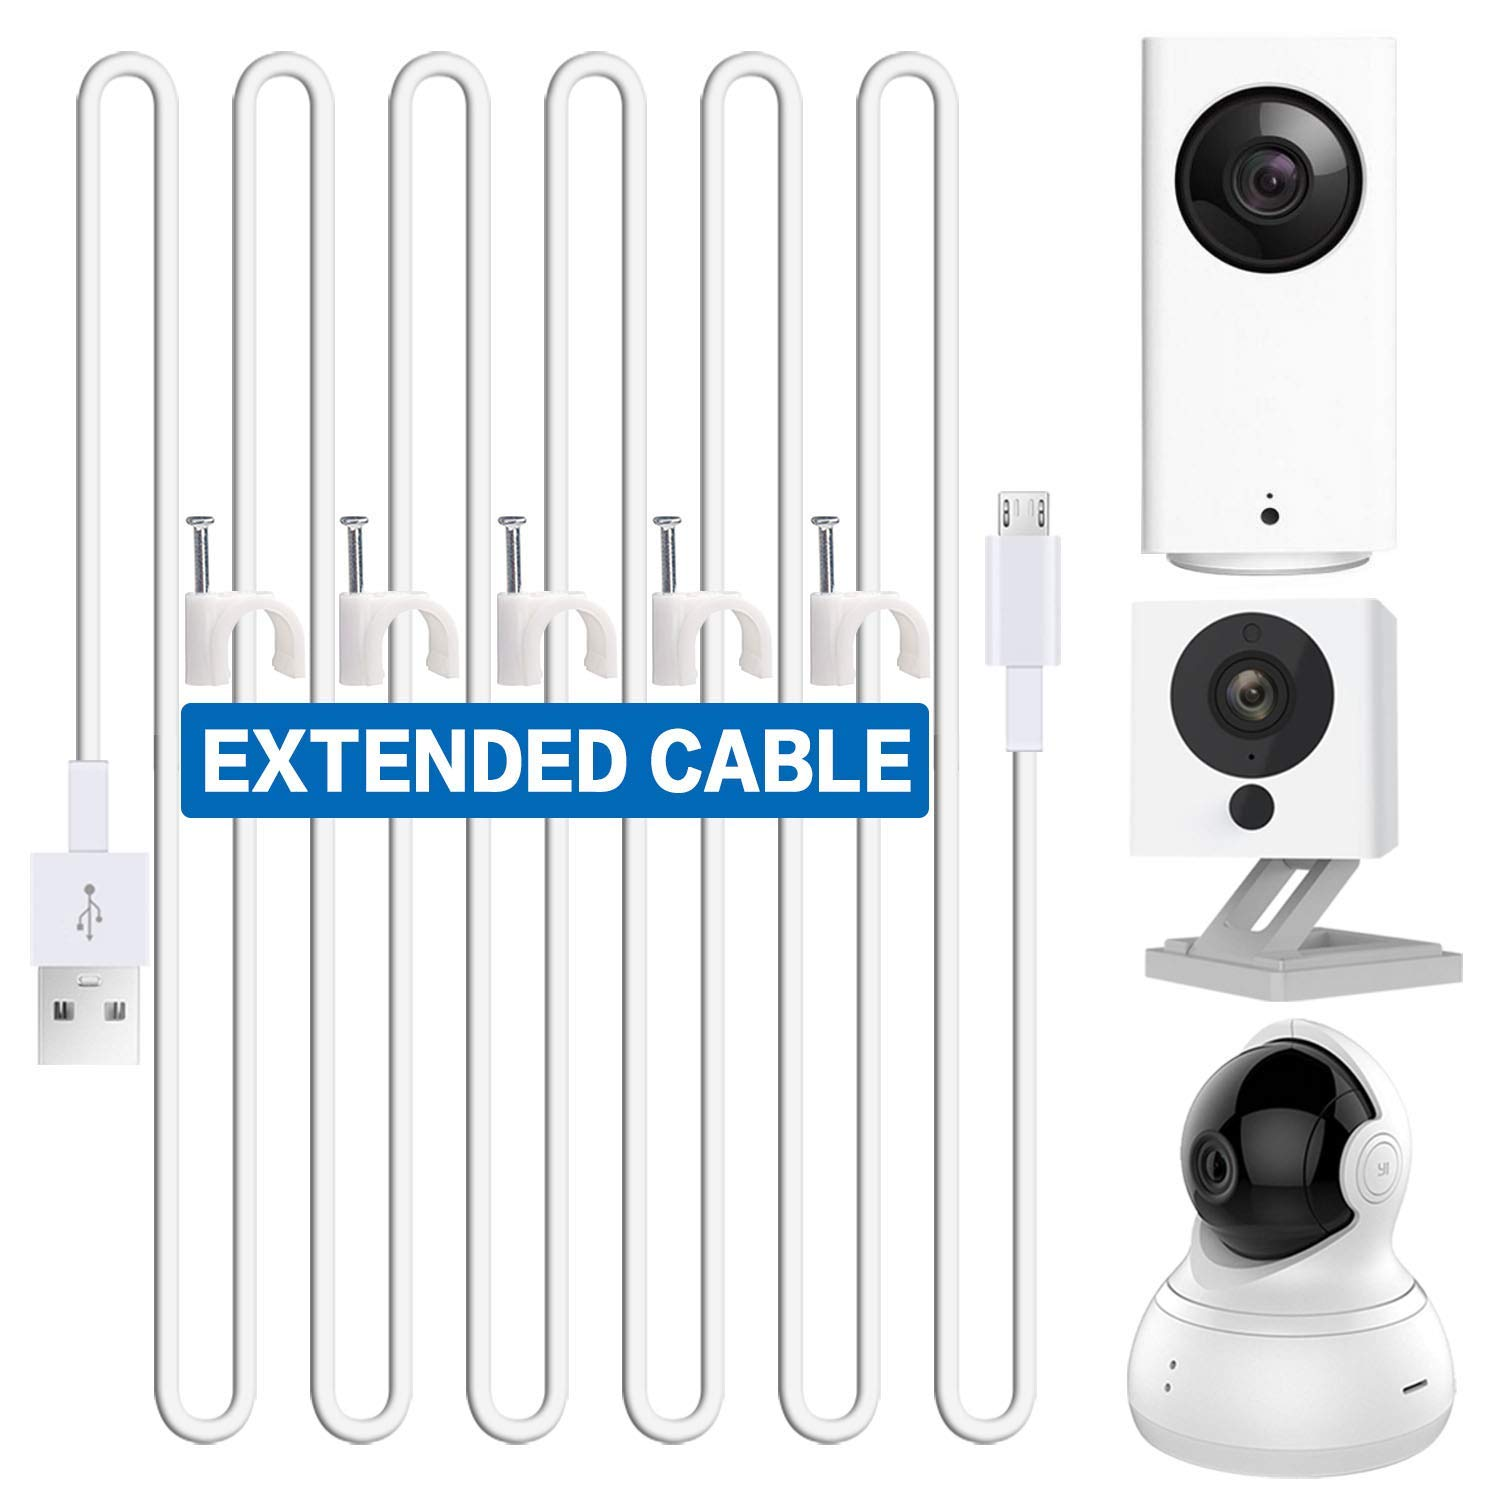 Quarble 16.4ft USB Power Extension Cable for Blink, WyzeCam, Yi Camera, Oculus Go, Echo Dot Kid Edition, Nest Cam, Netvue, Furbo Dog and Other Home Security Camera